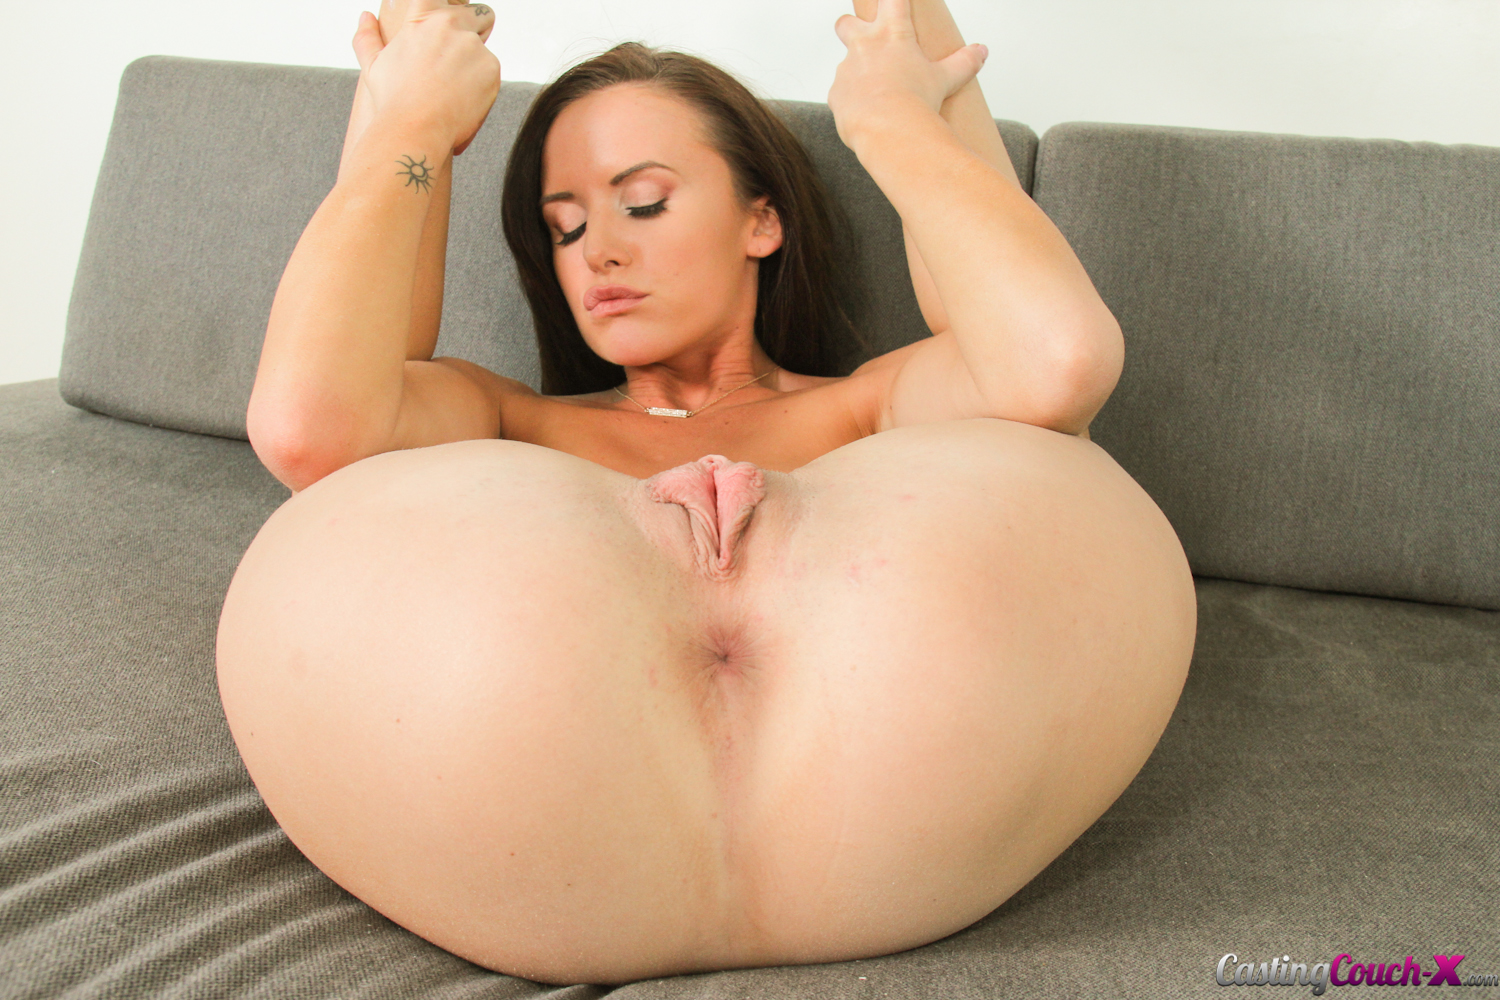 Castingcouchx big tits brooke wylde auditions for porn